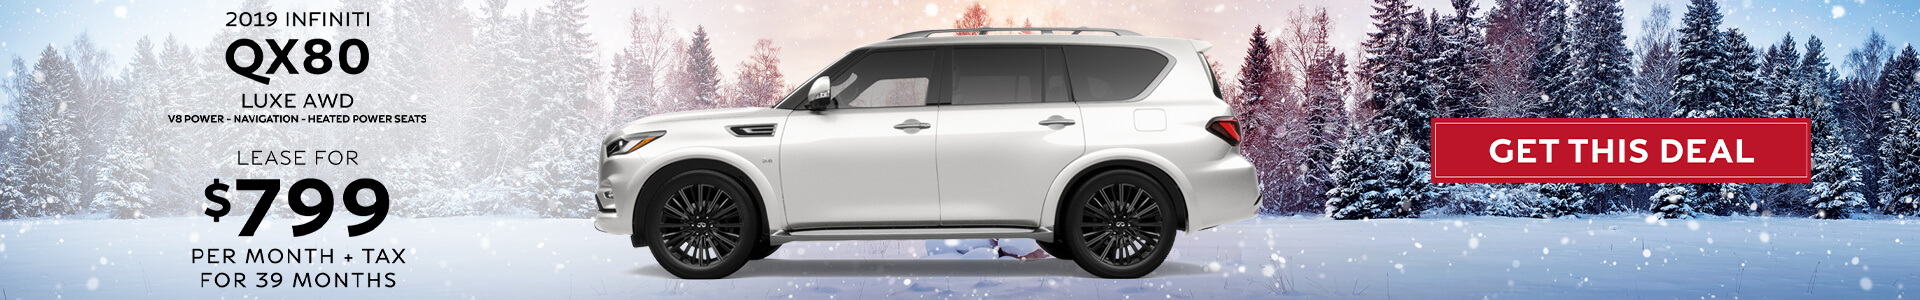 QX80 - Lease for 799